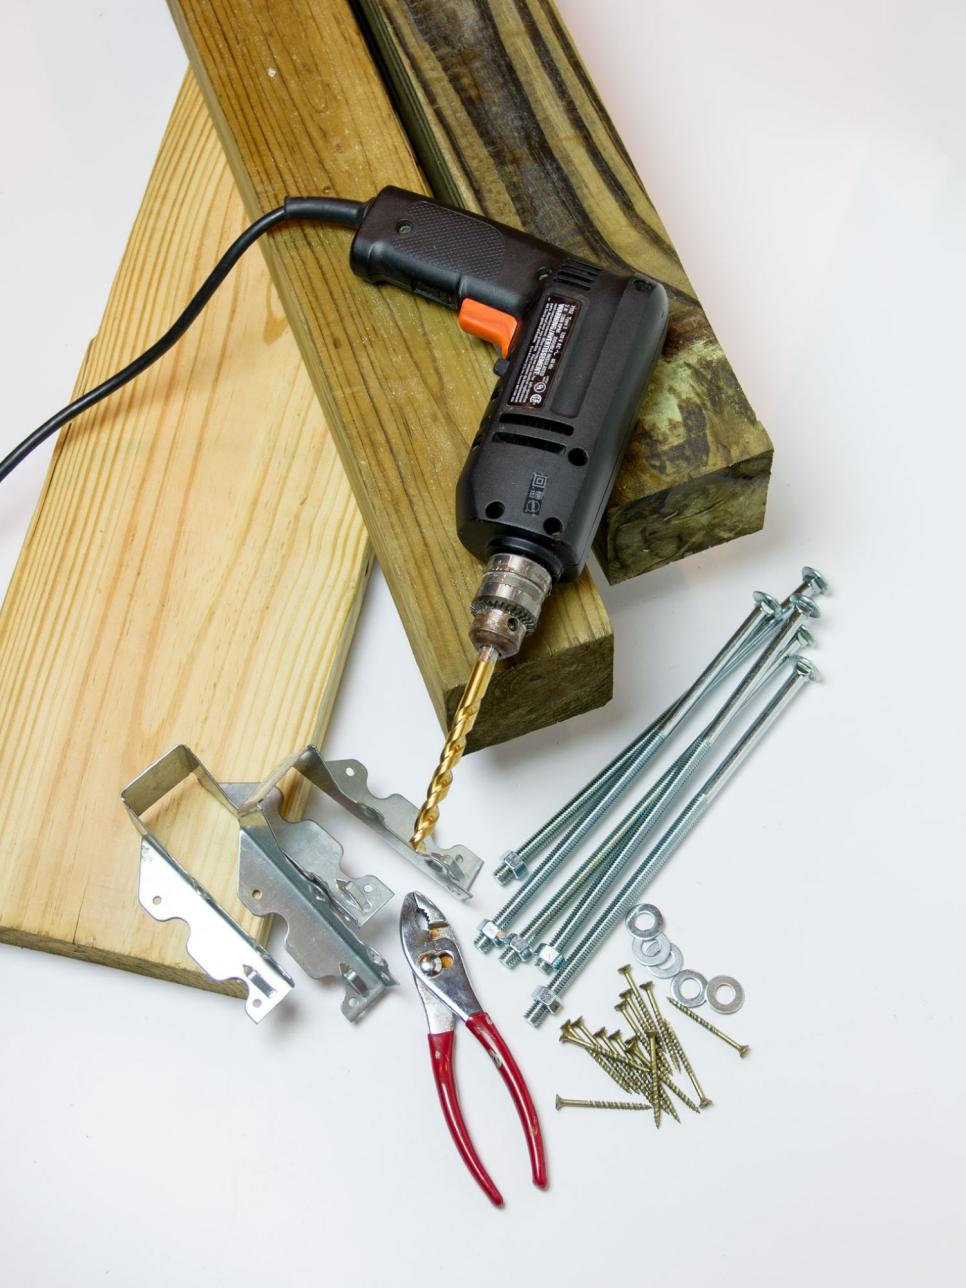 How to build an indoor tree house play loft and drill into the studs - Accessorize